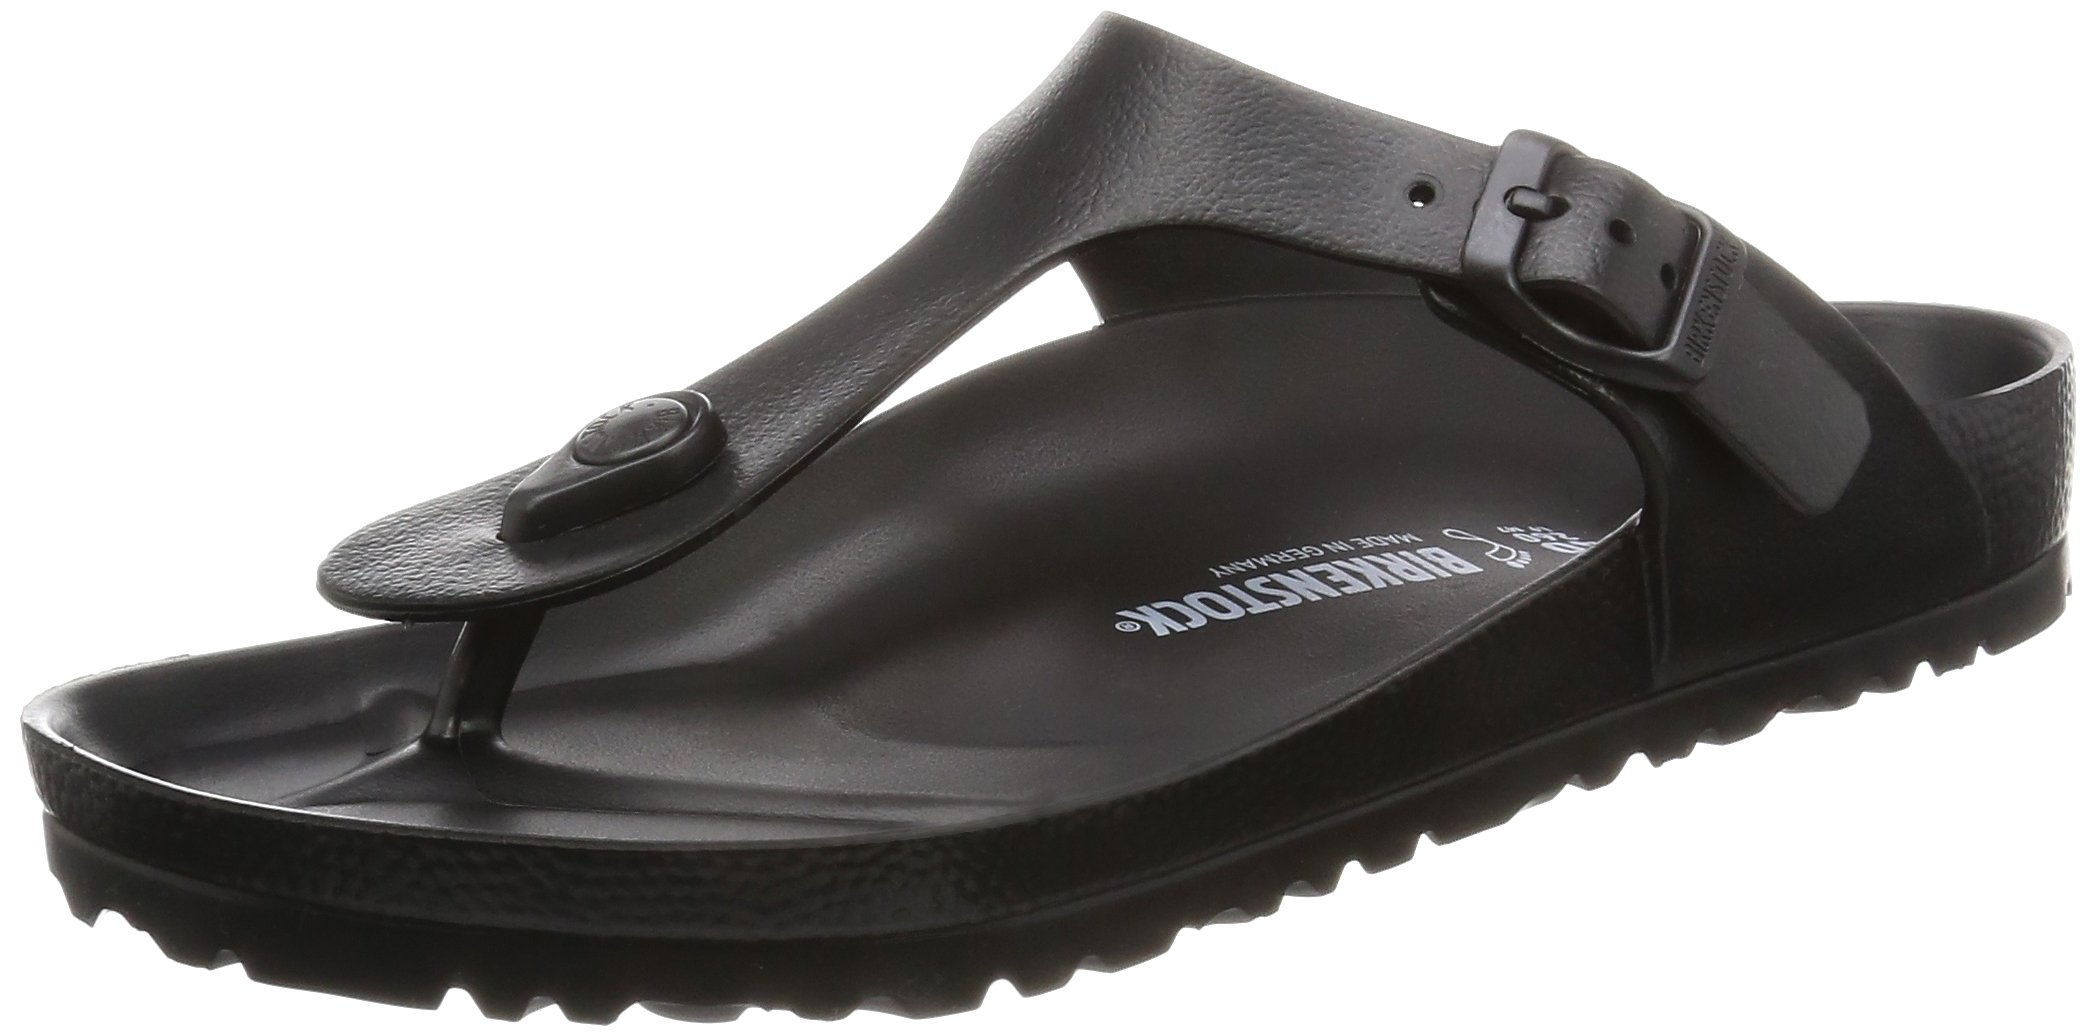 Birkenstock Women's Gizeh Black EVA Sandals 39 (US Women's 8-8.5)